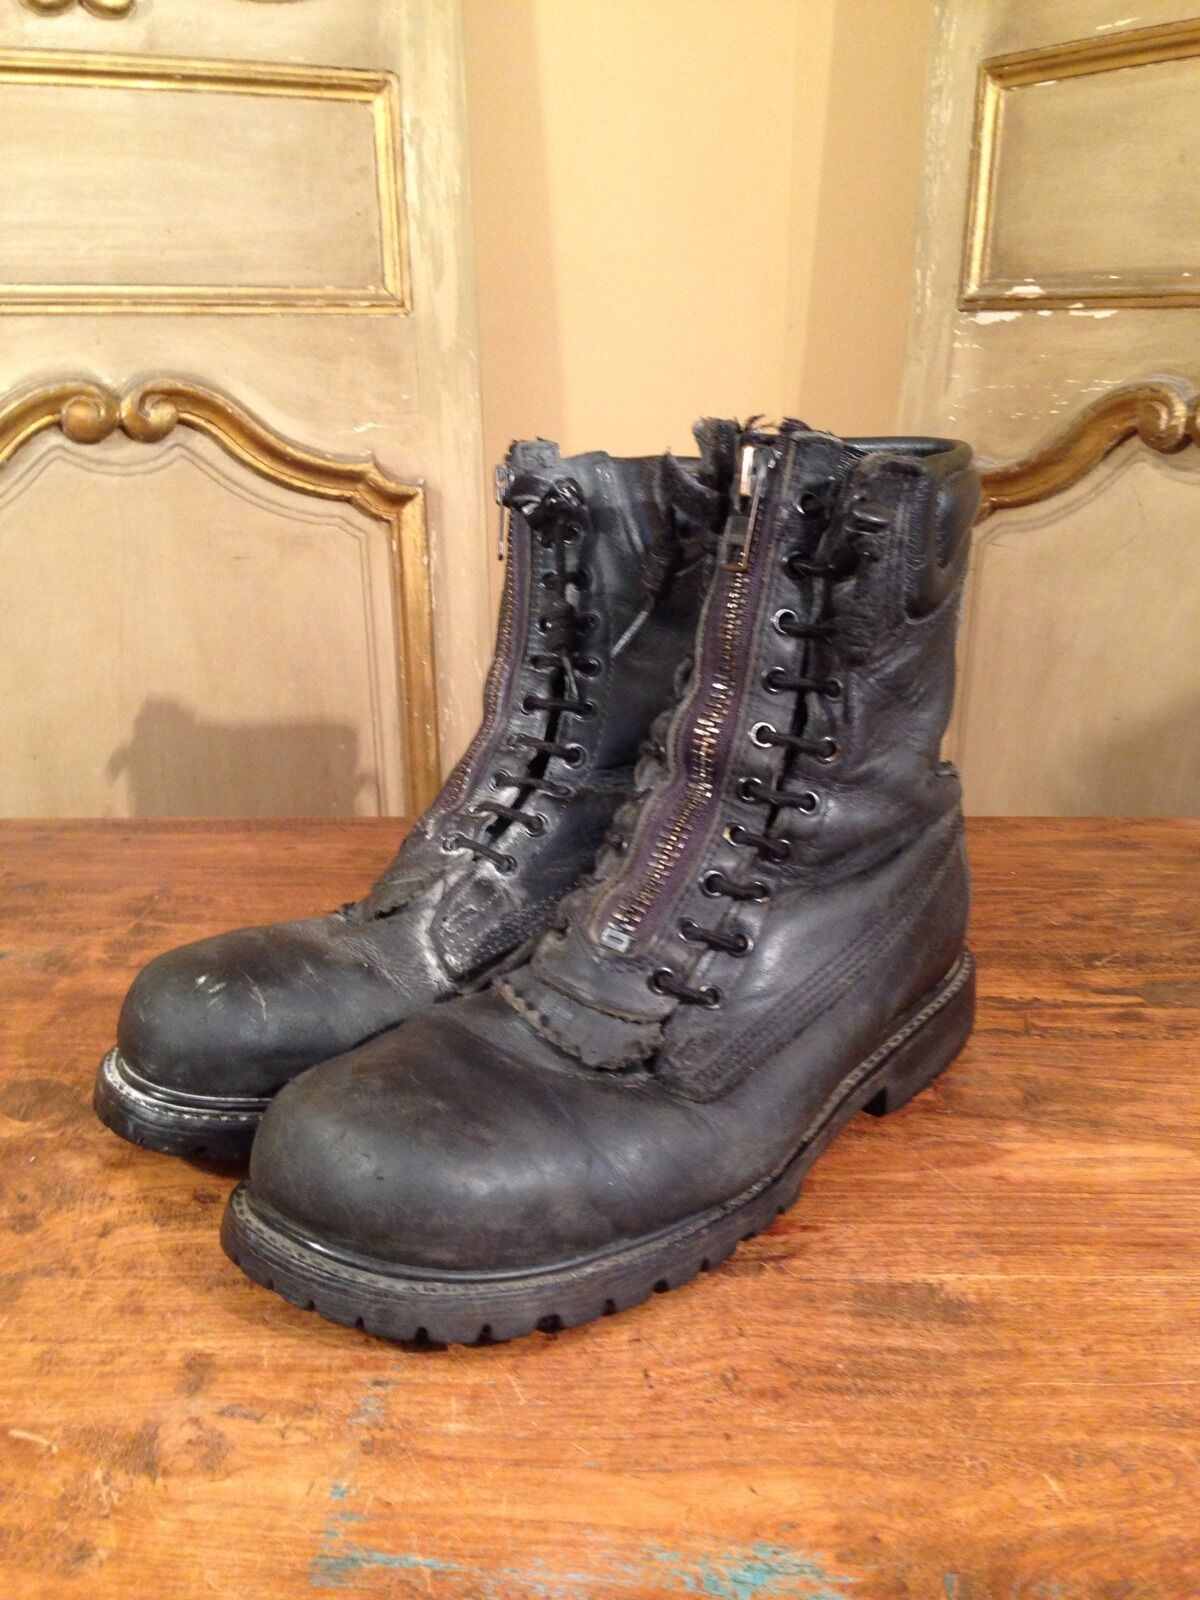 Vintage Military Paratrooper Zip Up Climbing Hiking Army Boots Size 12